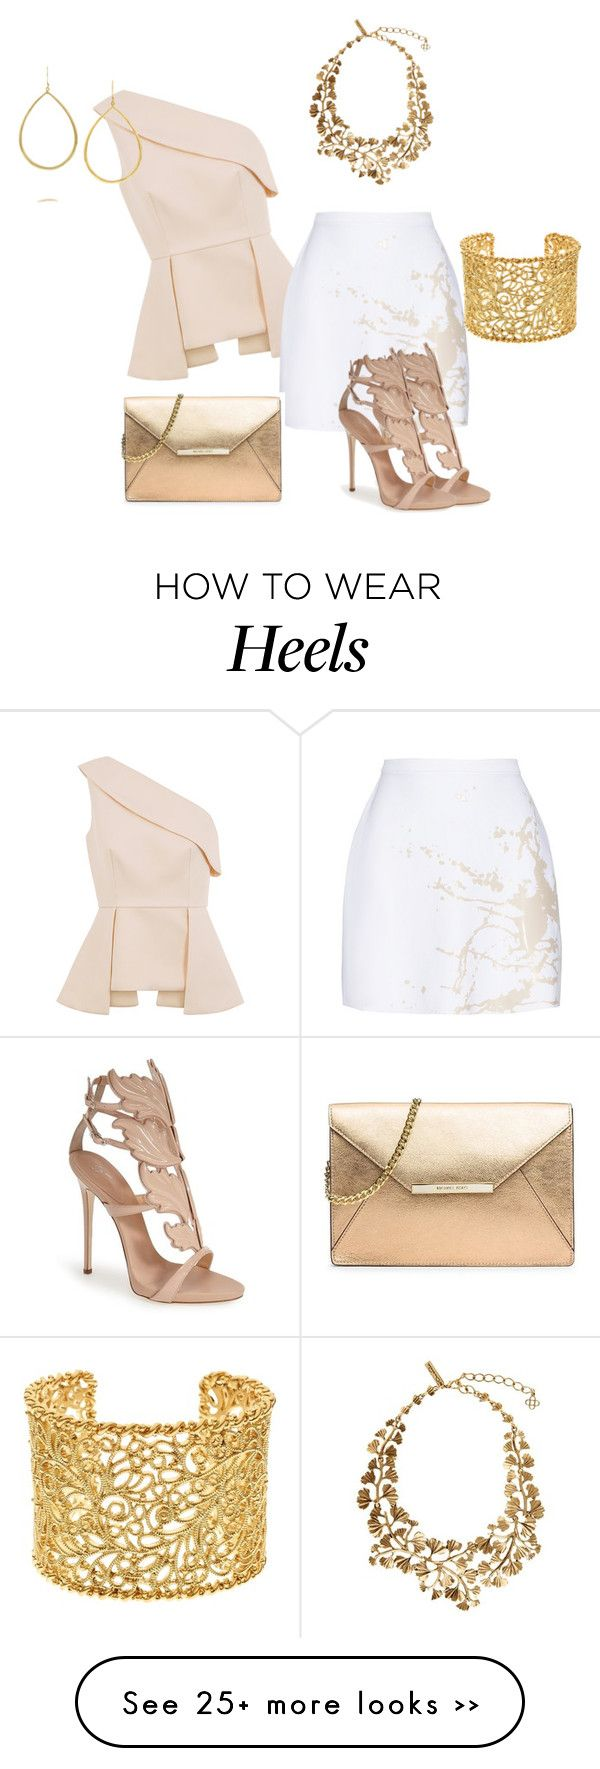 """20.08.2015"" by vicinogiovanna on Polyvore featuring C/MEO COLLECTIVE, Zimmermann, Giuseppe Zanotti, Oscar de la Renta, Brooks Brothers, Ippolita and MICHAEL Michael Kors"